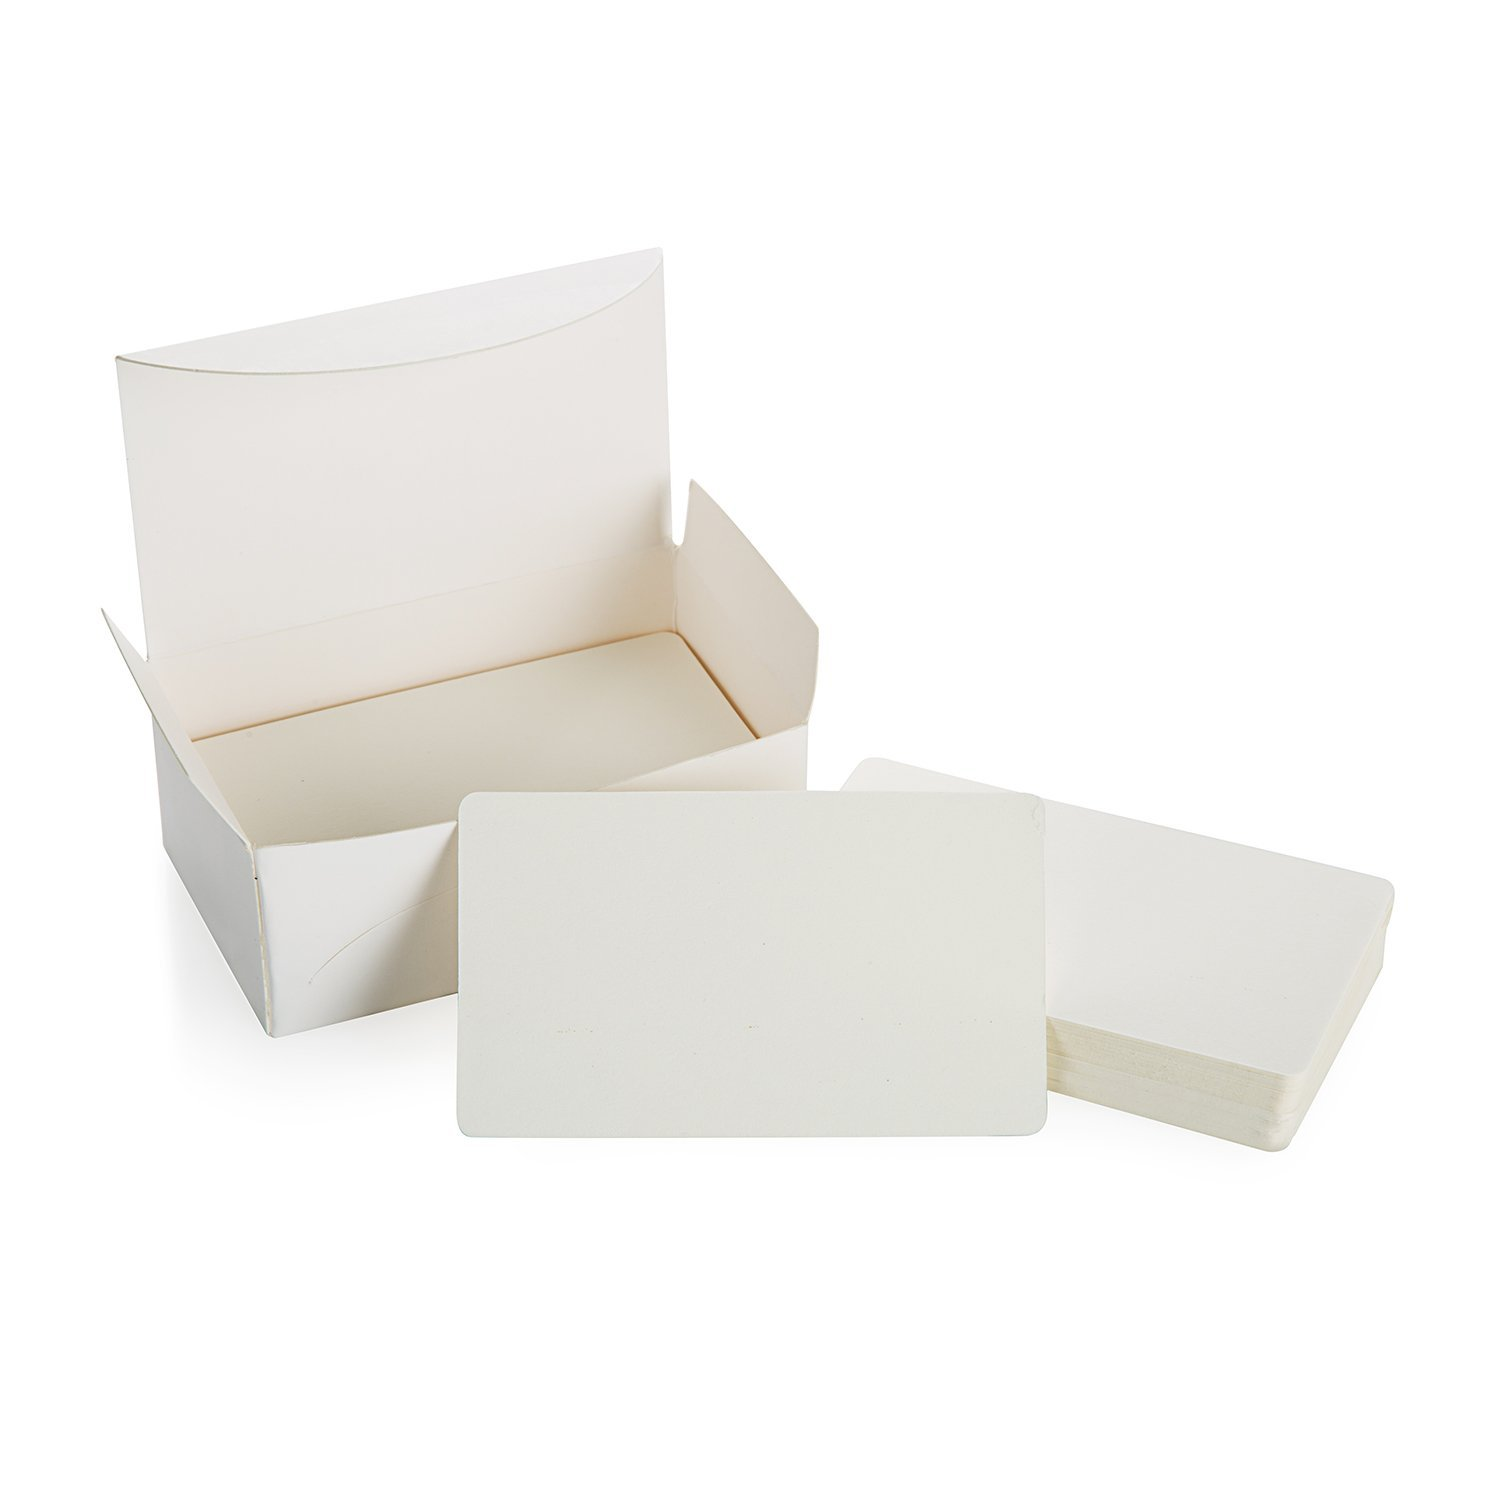 Us 2 61 17 Off Ppyy New Blank White Cardboard Paper Message Card Business Cards Word Card Diy Tag Gift Card About 100pcs White In Business Cards